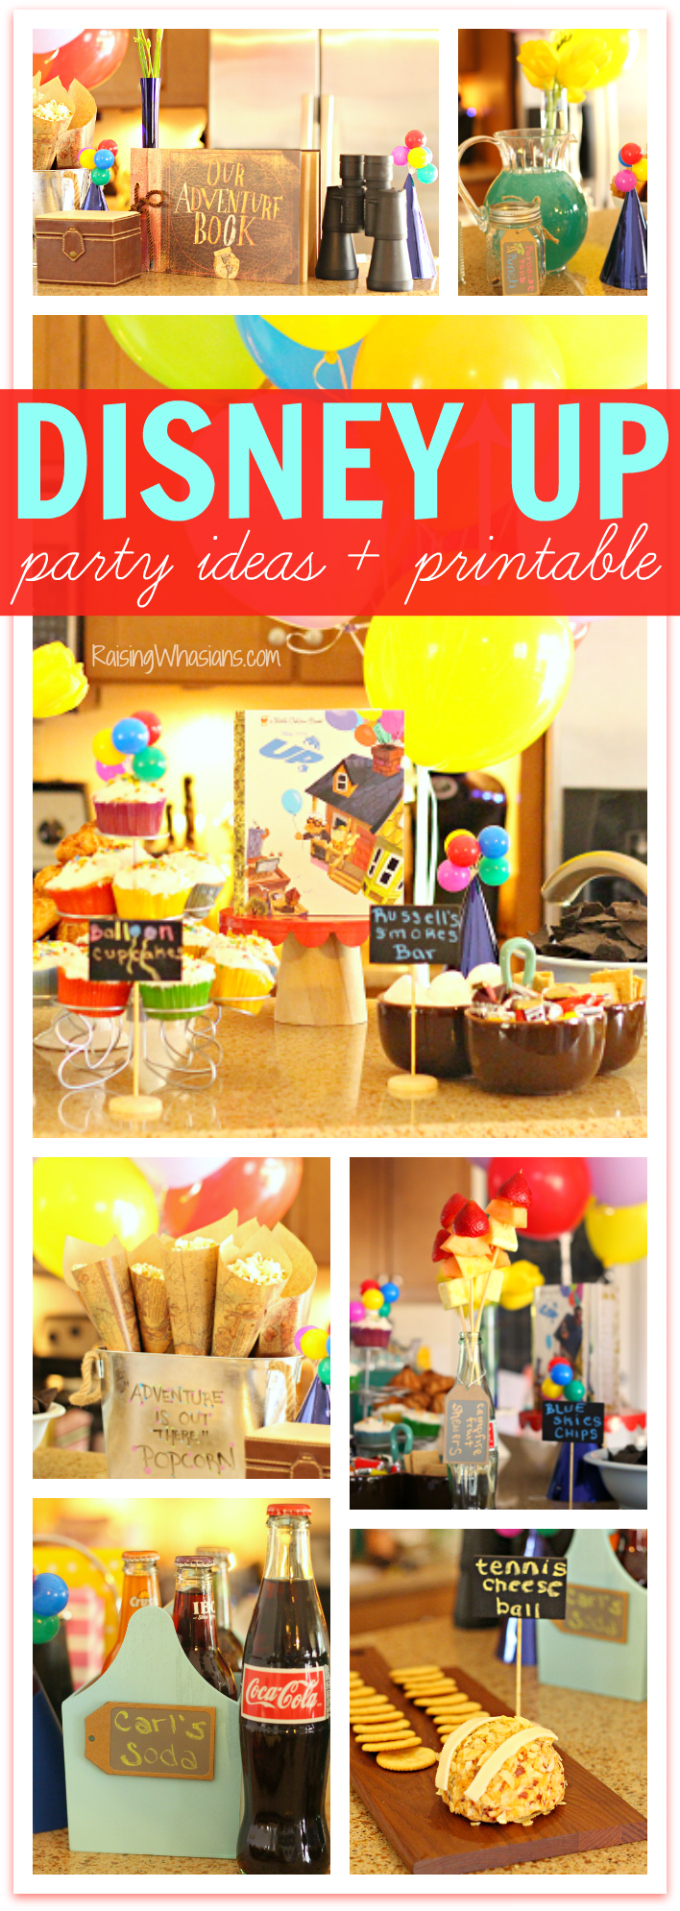 Disney up party ideas pinterest